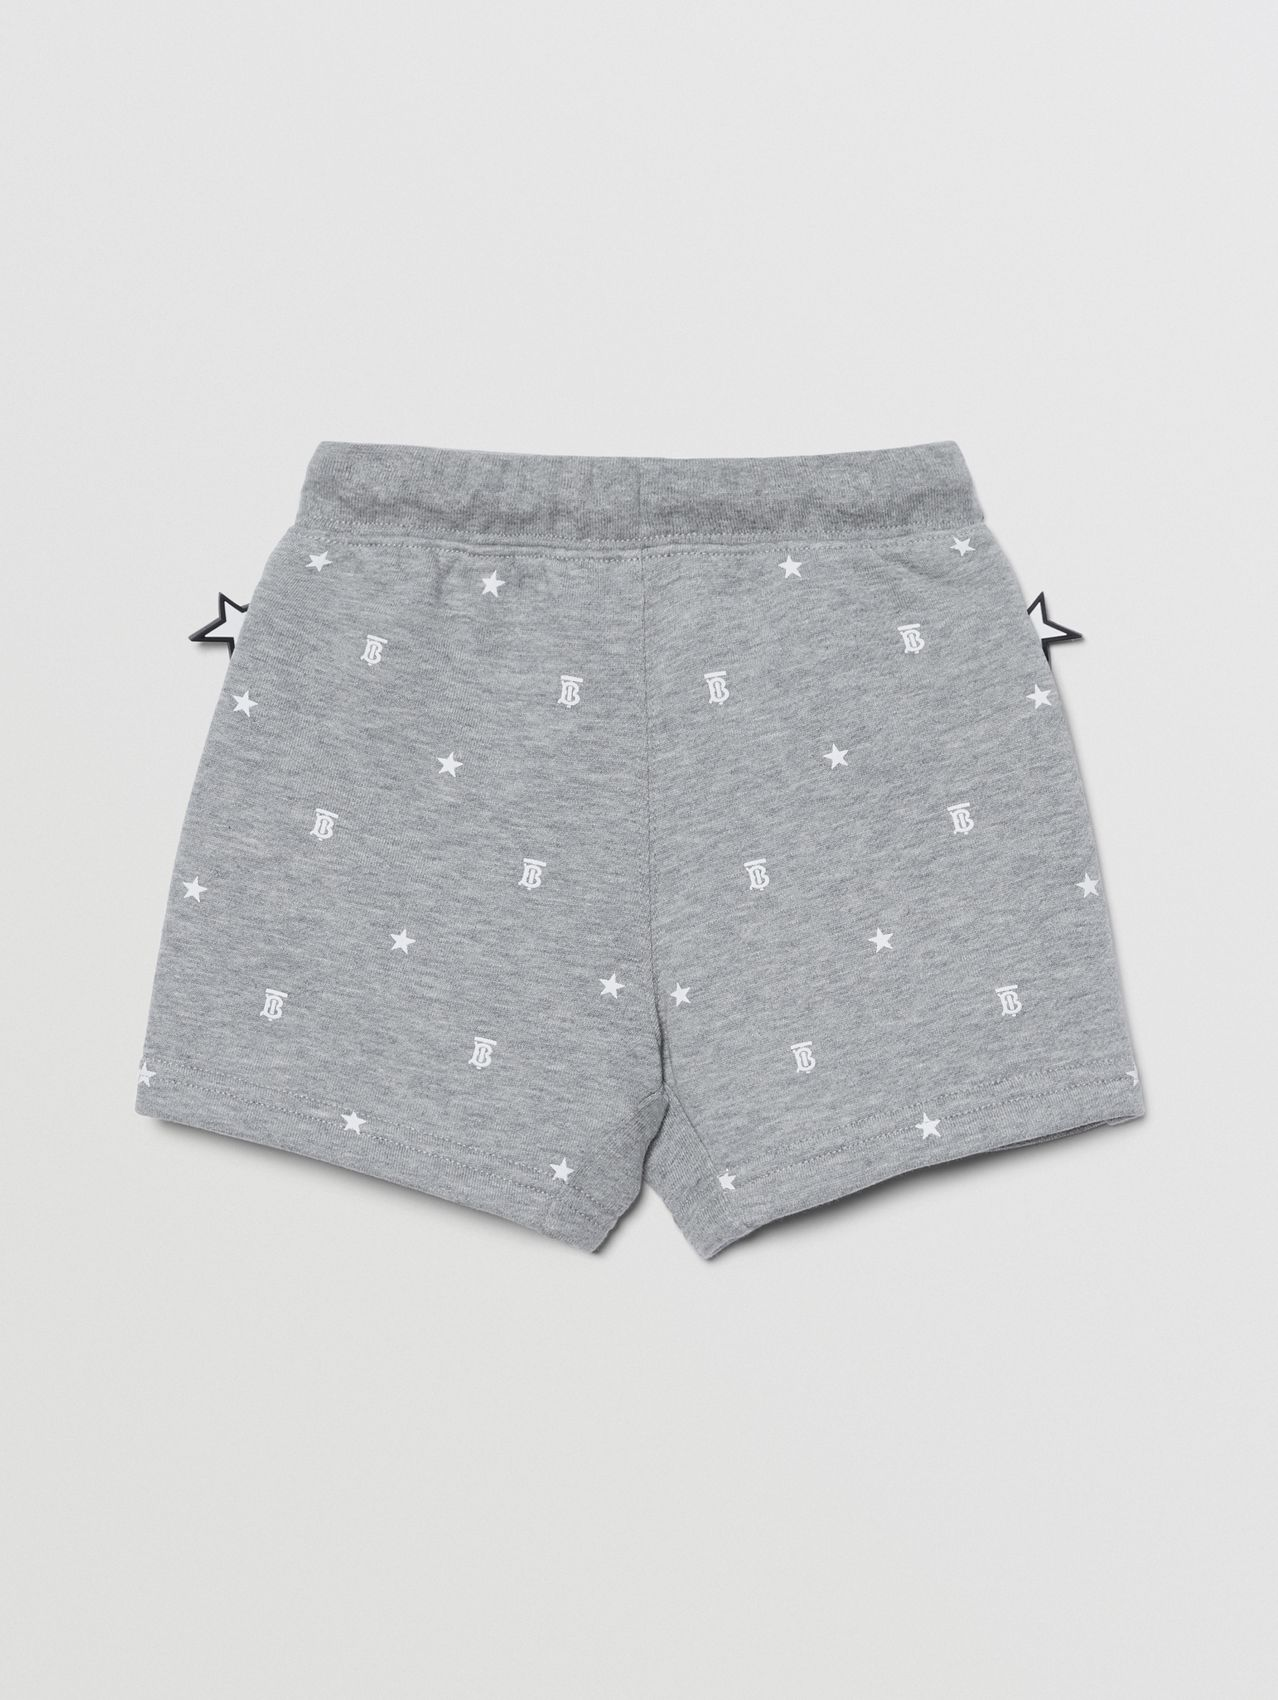 Star and Monogram Motif Cotton Shorts in Grey